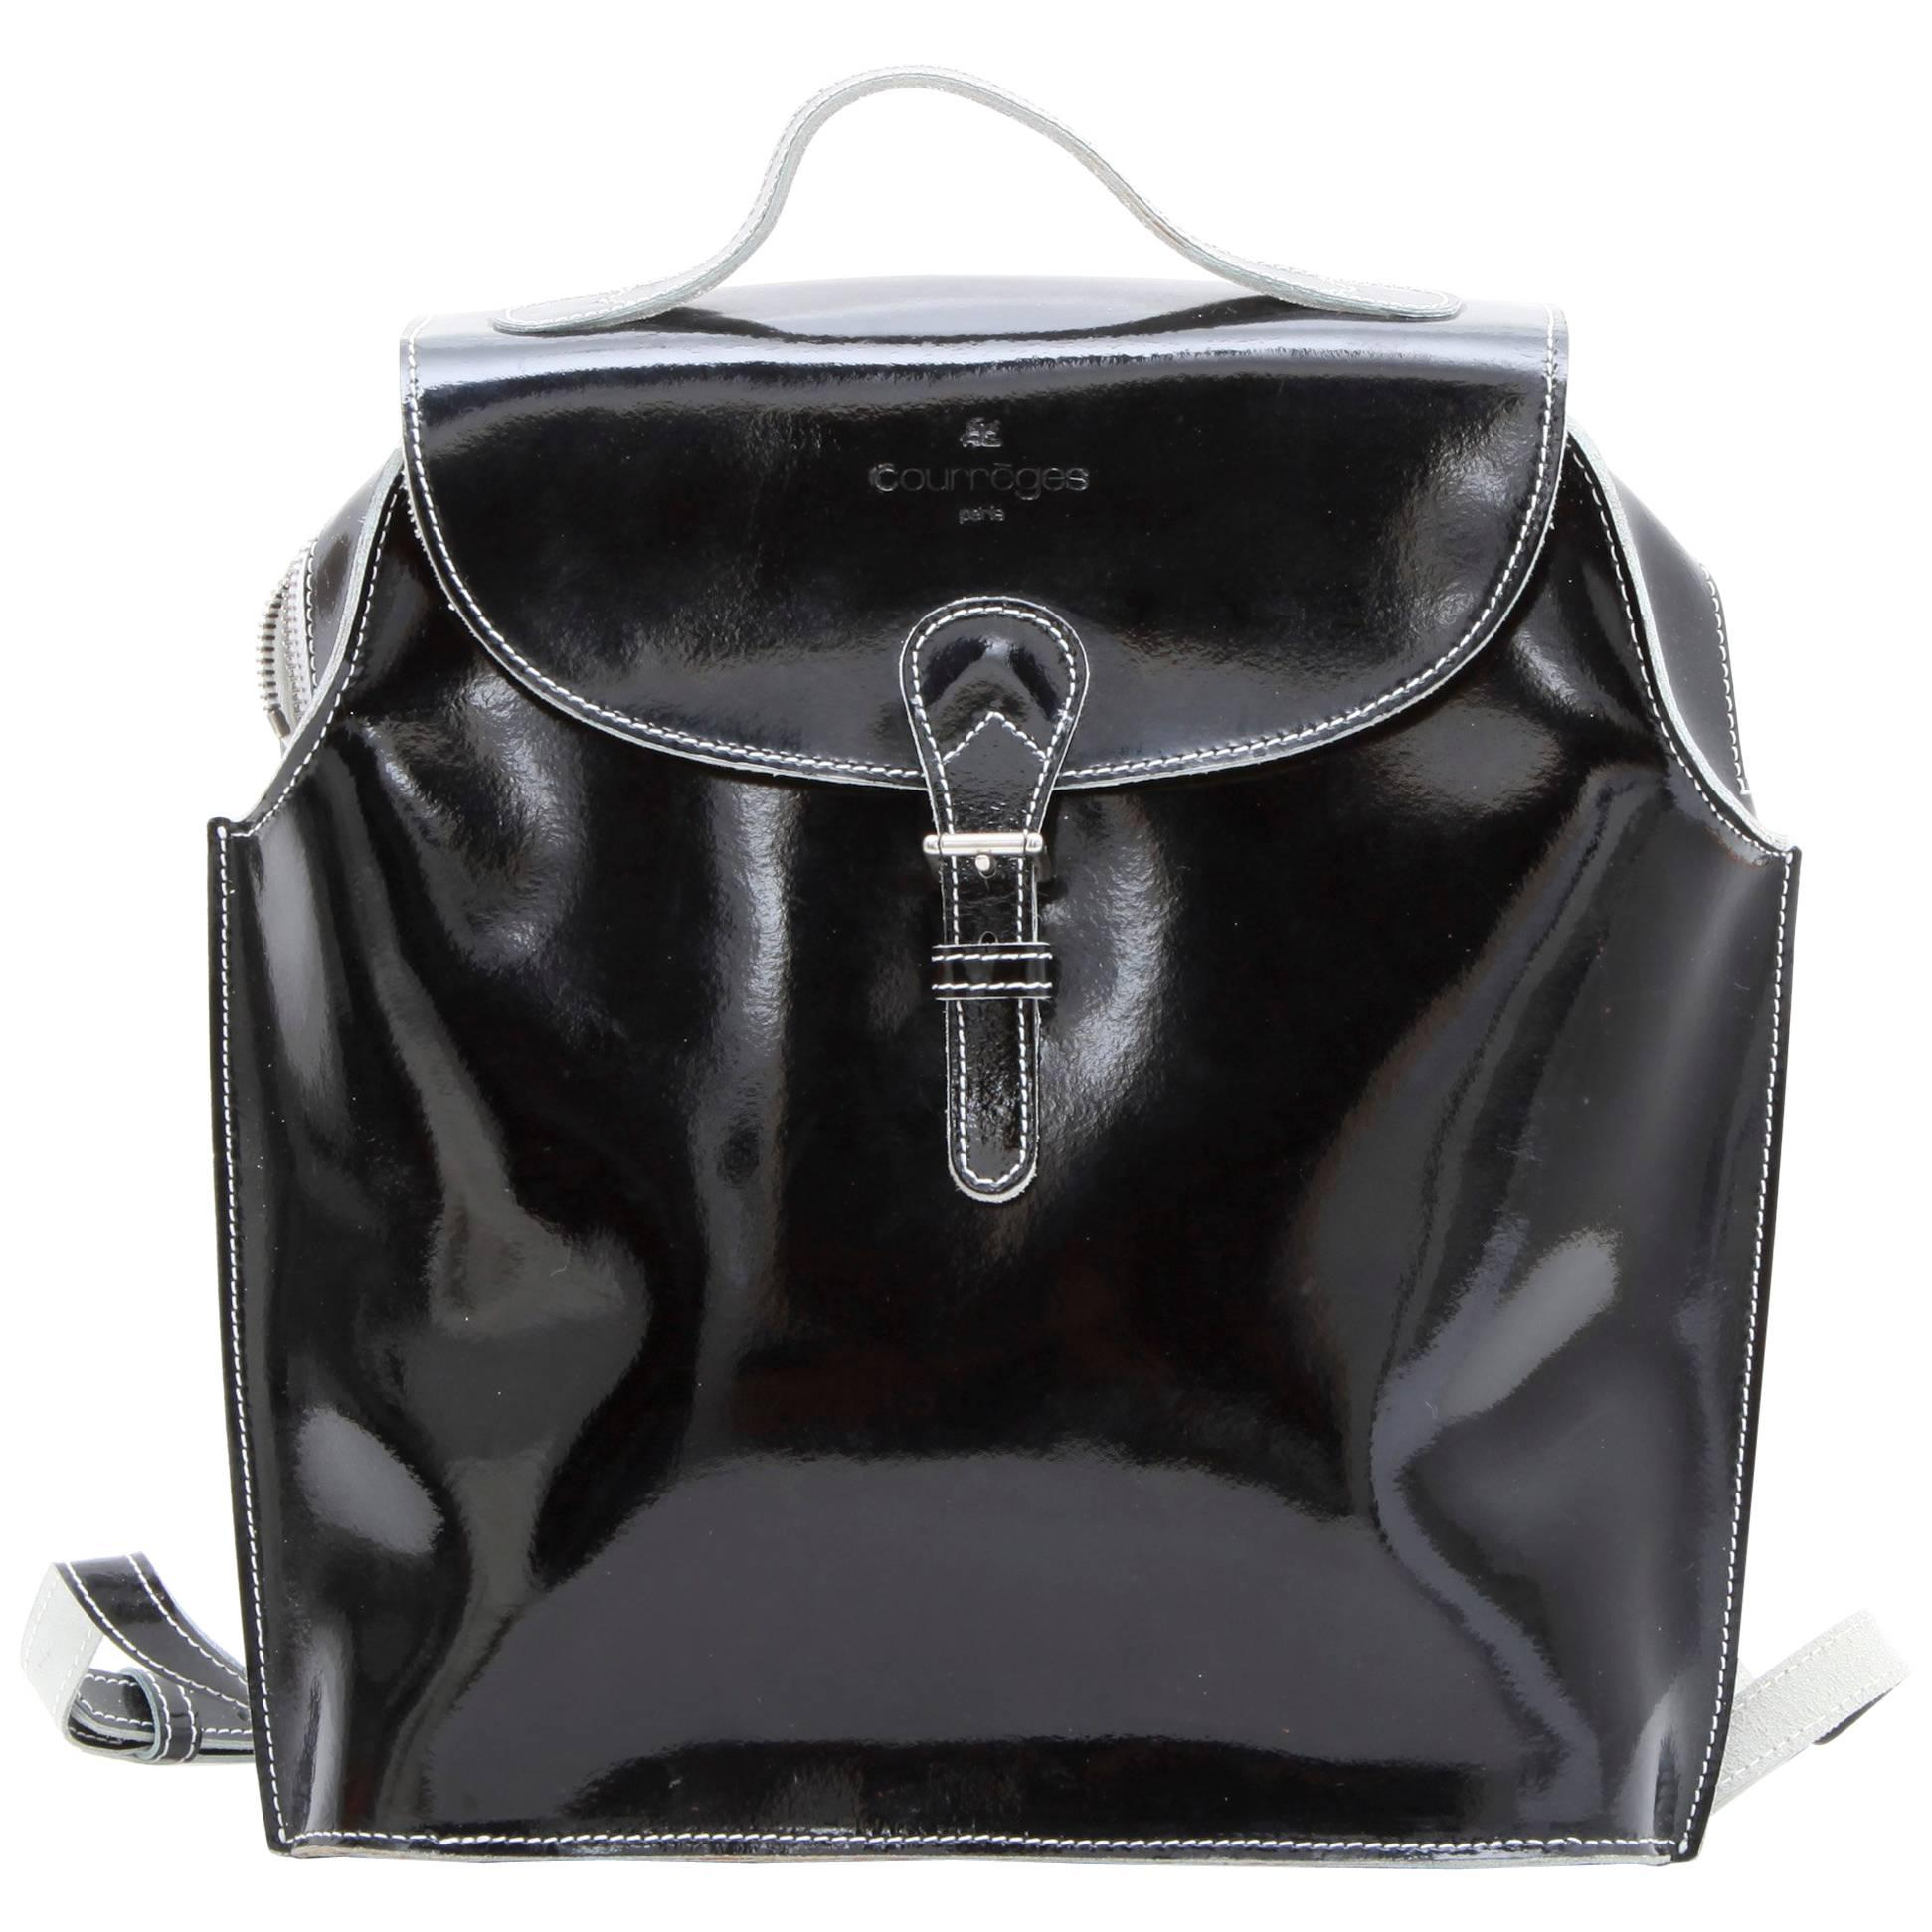 André Courrèges Black Courreges Leather Shoulder Bag